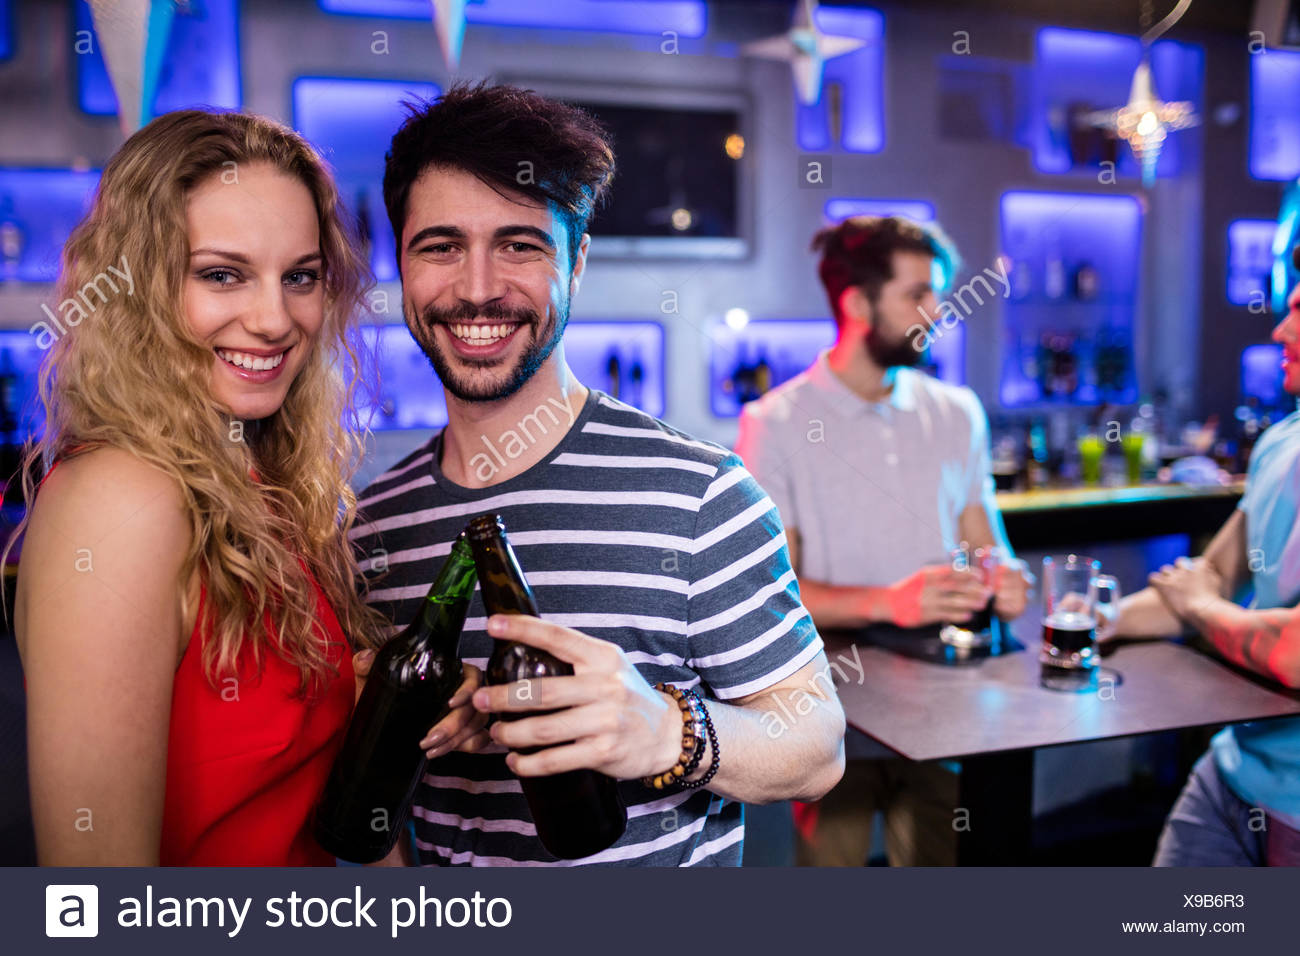 Happy couple toasting a beer bottles - Stock Image